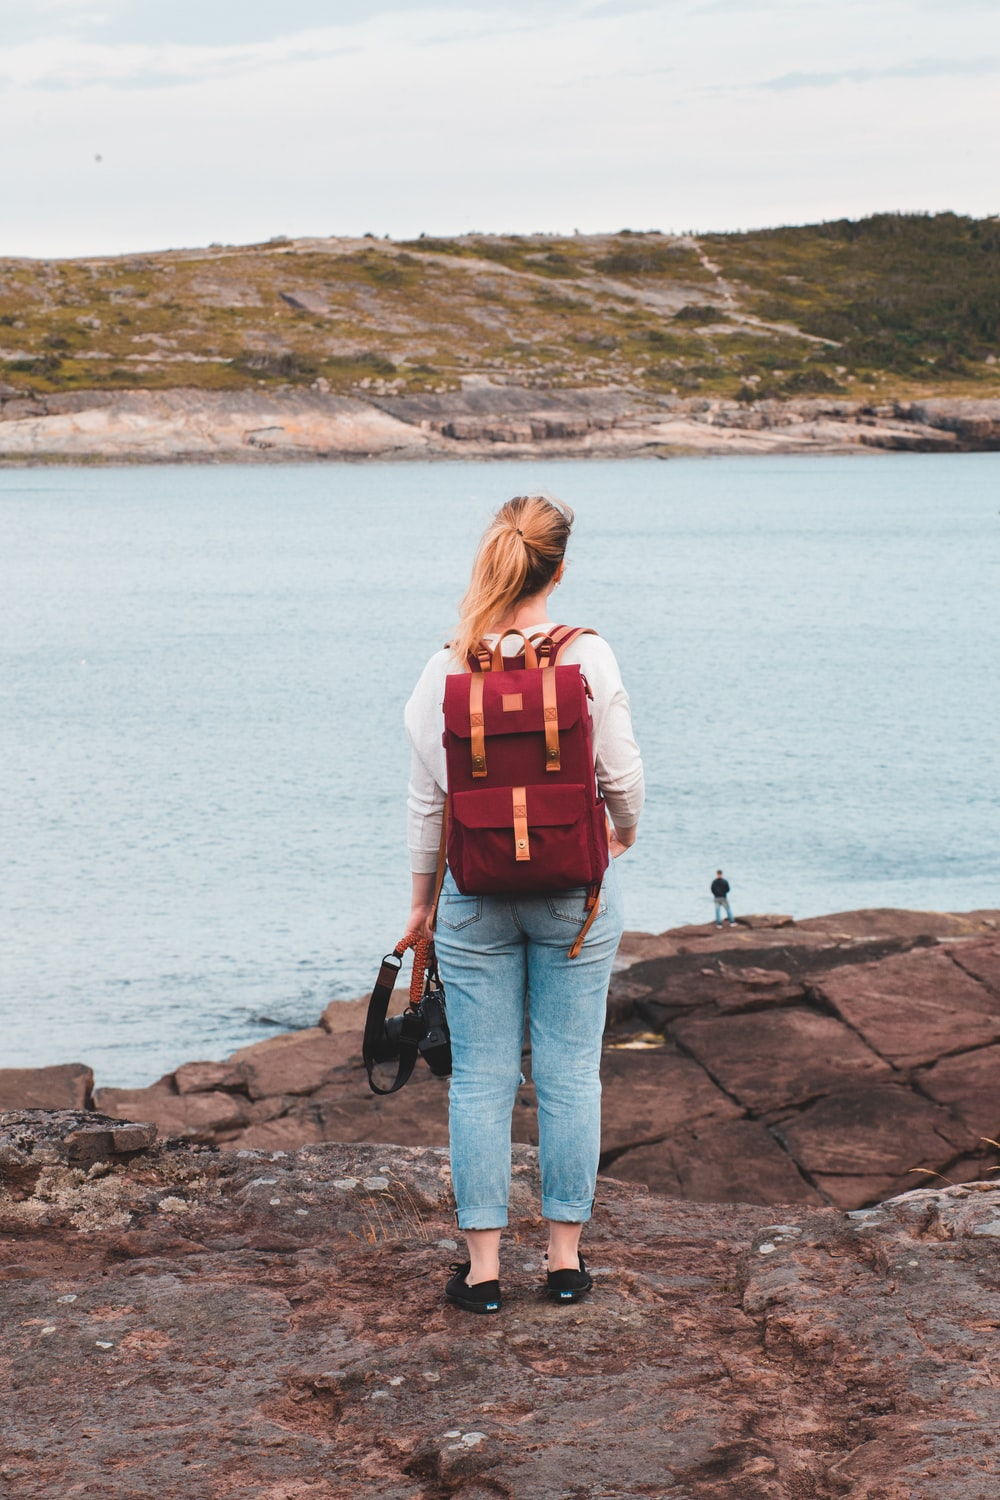 woman in red backpack standing on rock near body of water during daytime